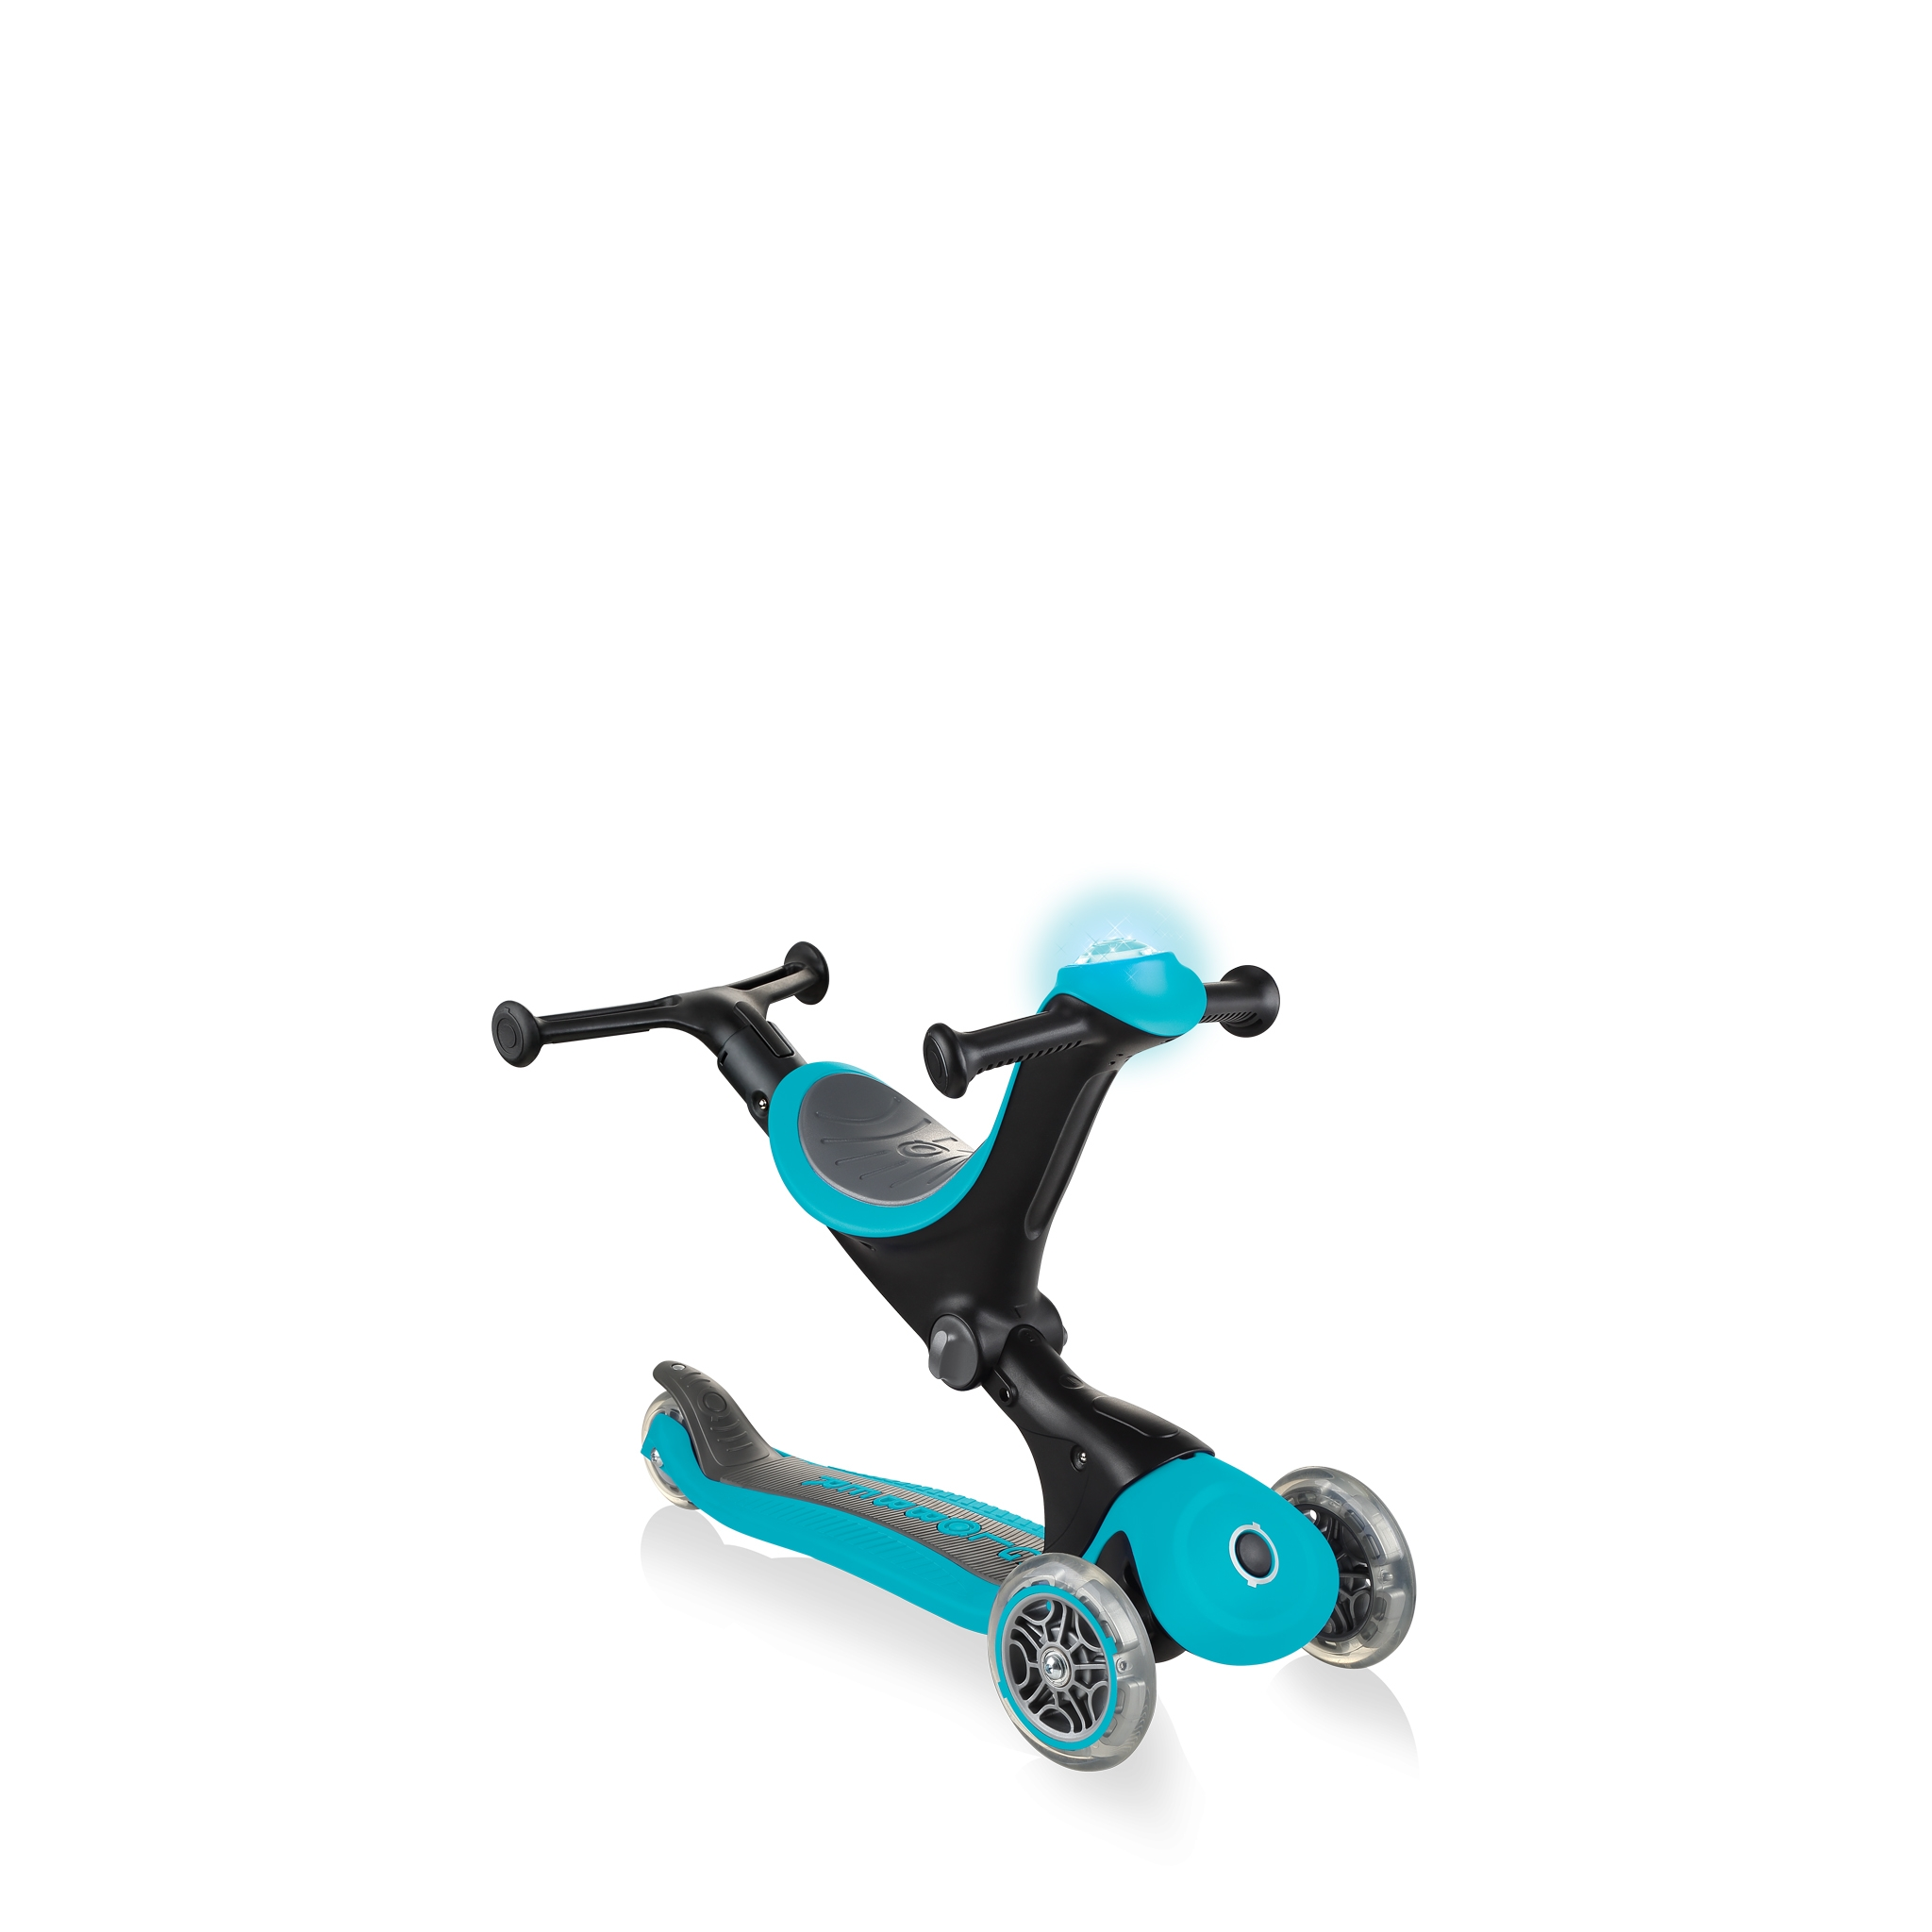 GO-UP-DELUXE-LIGHTS-walking-bike-mode-with-light-and-sound-module-teal 3